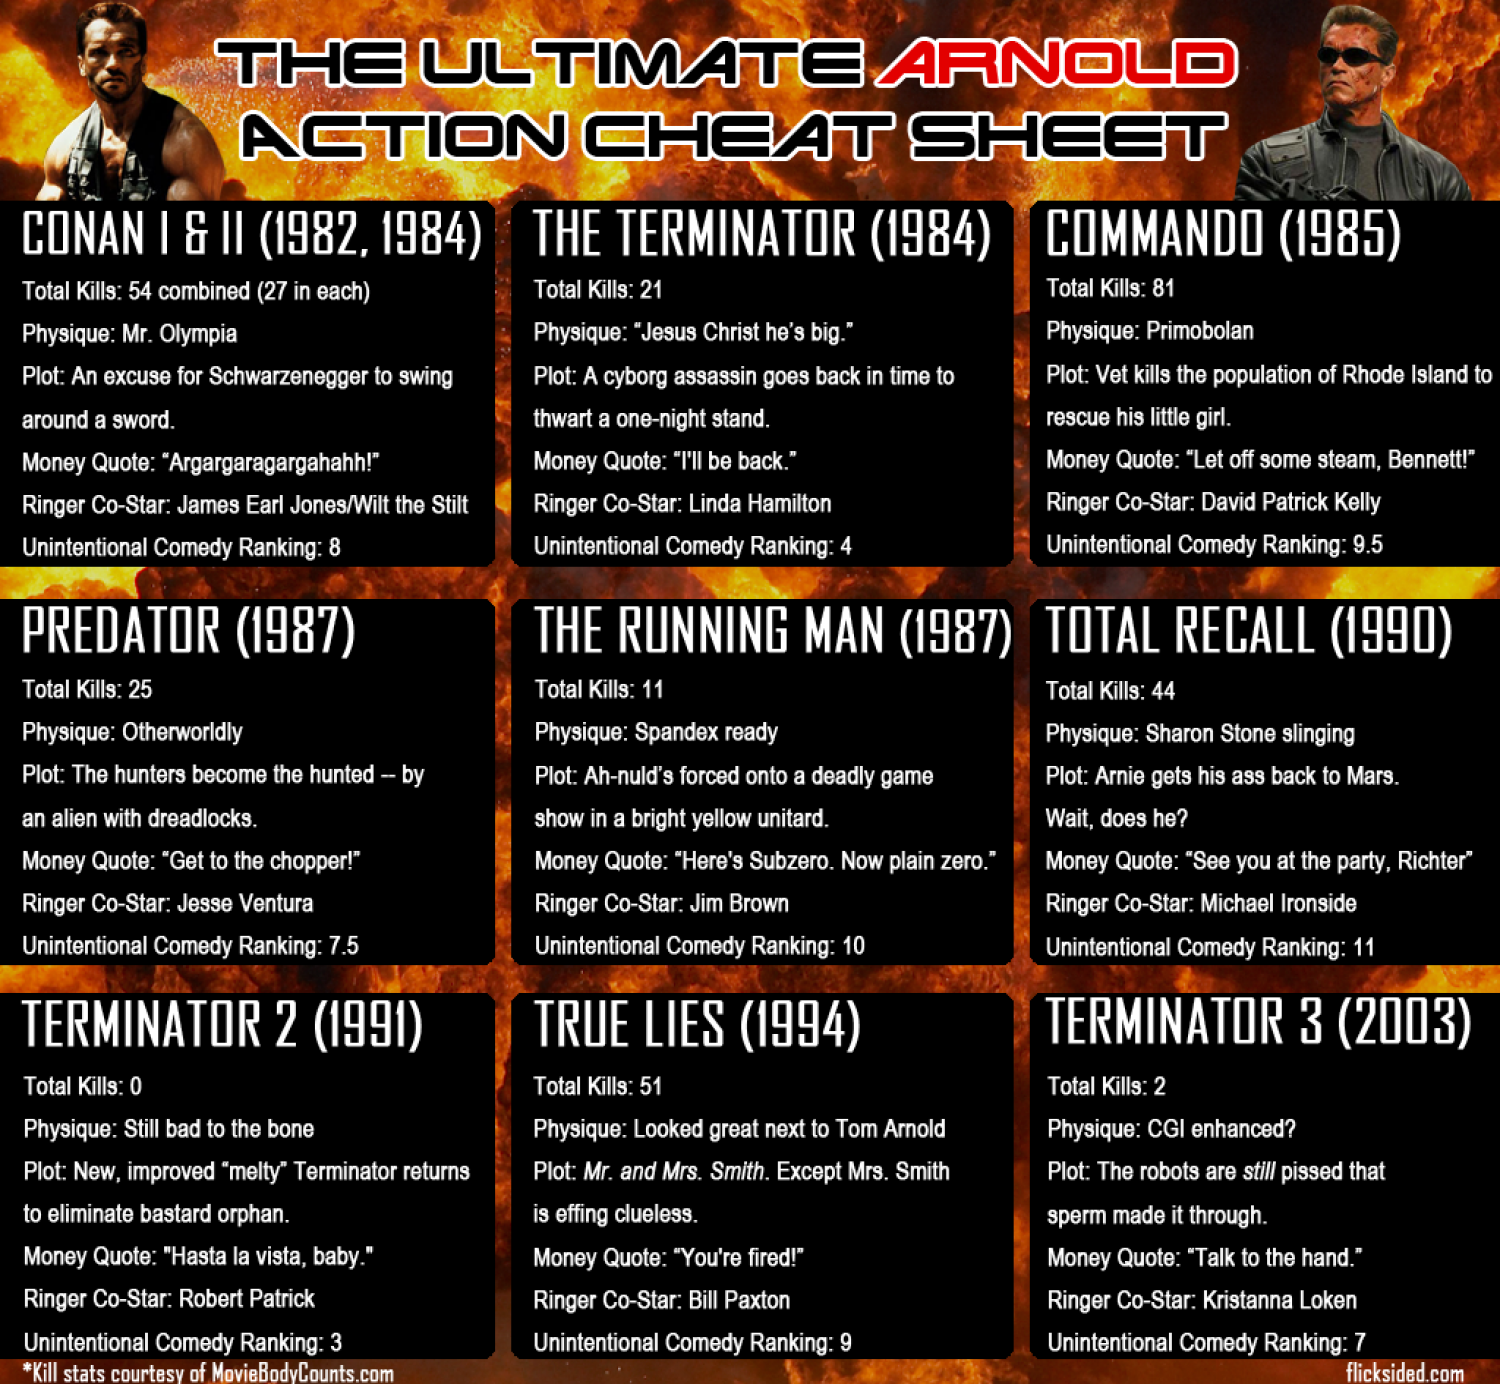 The Ultimate Arnold Action Cheat Sheet Infographic